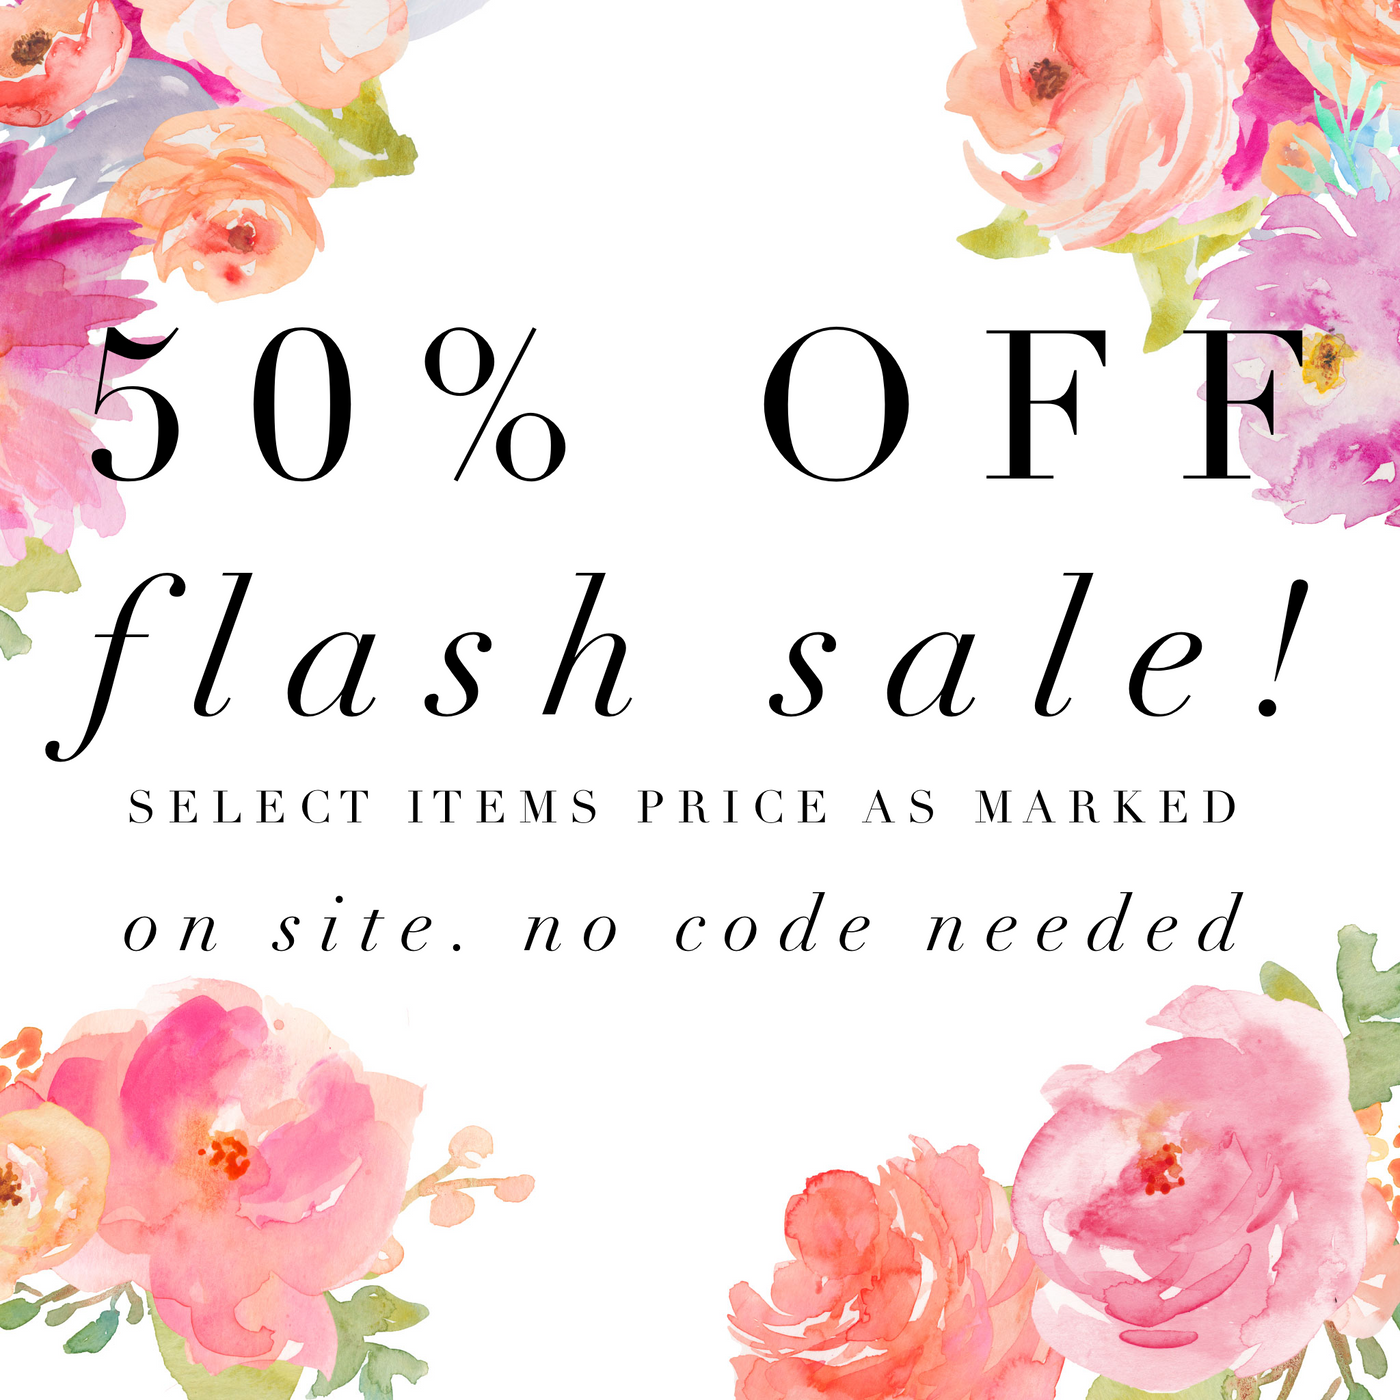 50% Off Flash Sale